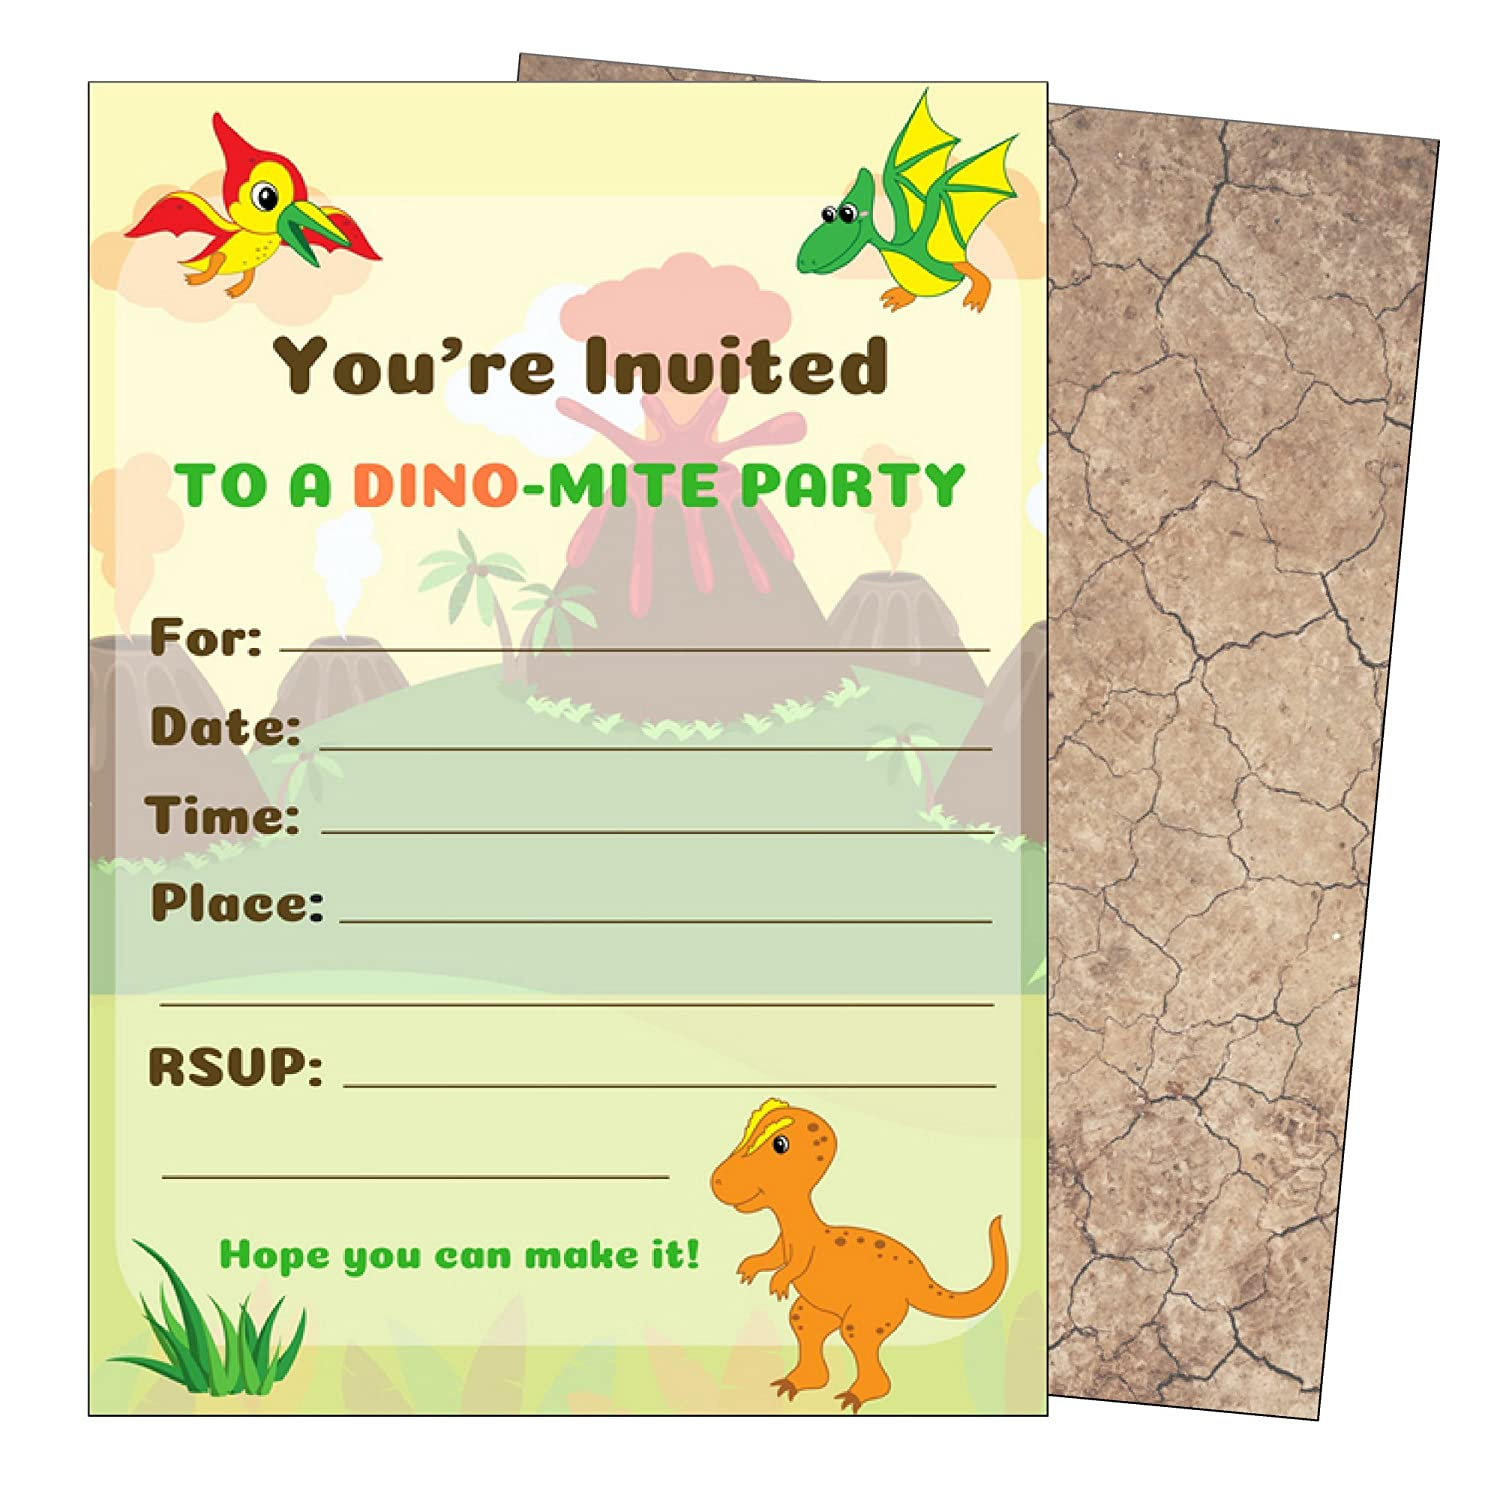 Dinosaur Birthday Party Invitations Dino Invitations Kids Dinosaur Party Invitations for Dinosaur Party Supplies Theme Decorations Boys or Girls Dino Invites Large 5x7 with Envelopes 25 Count